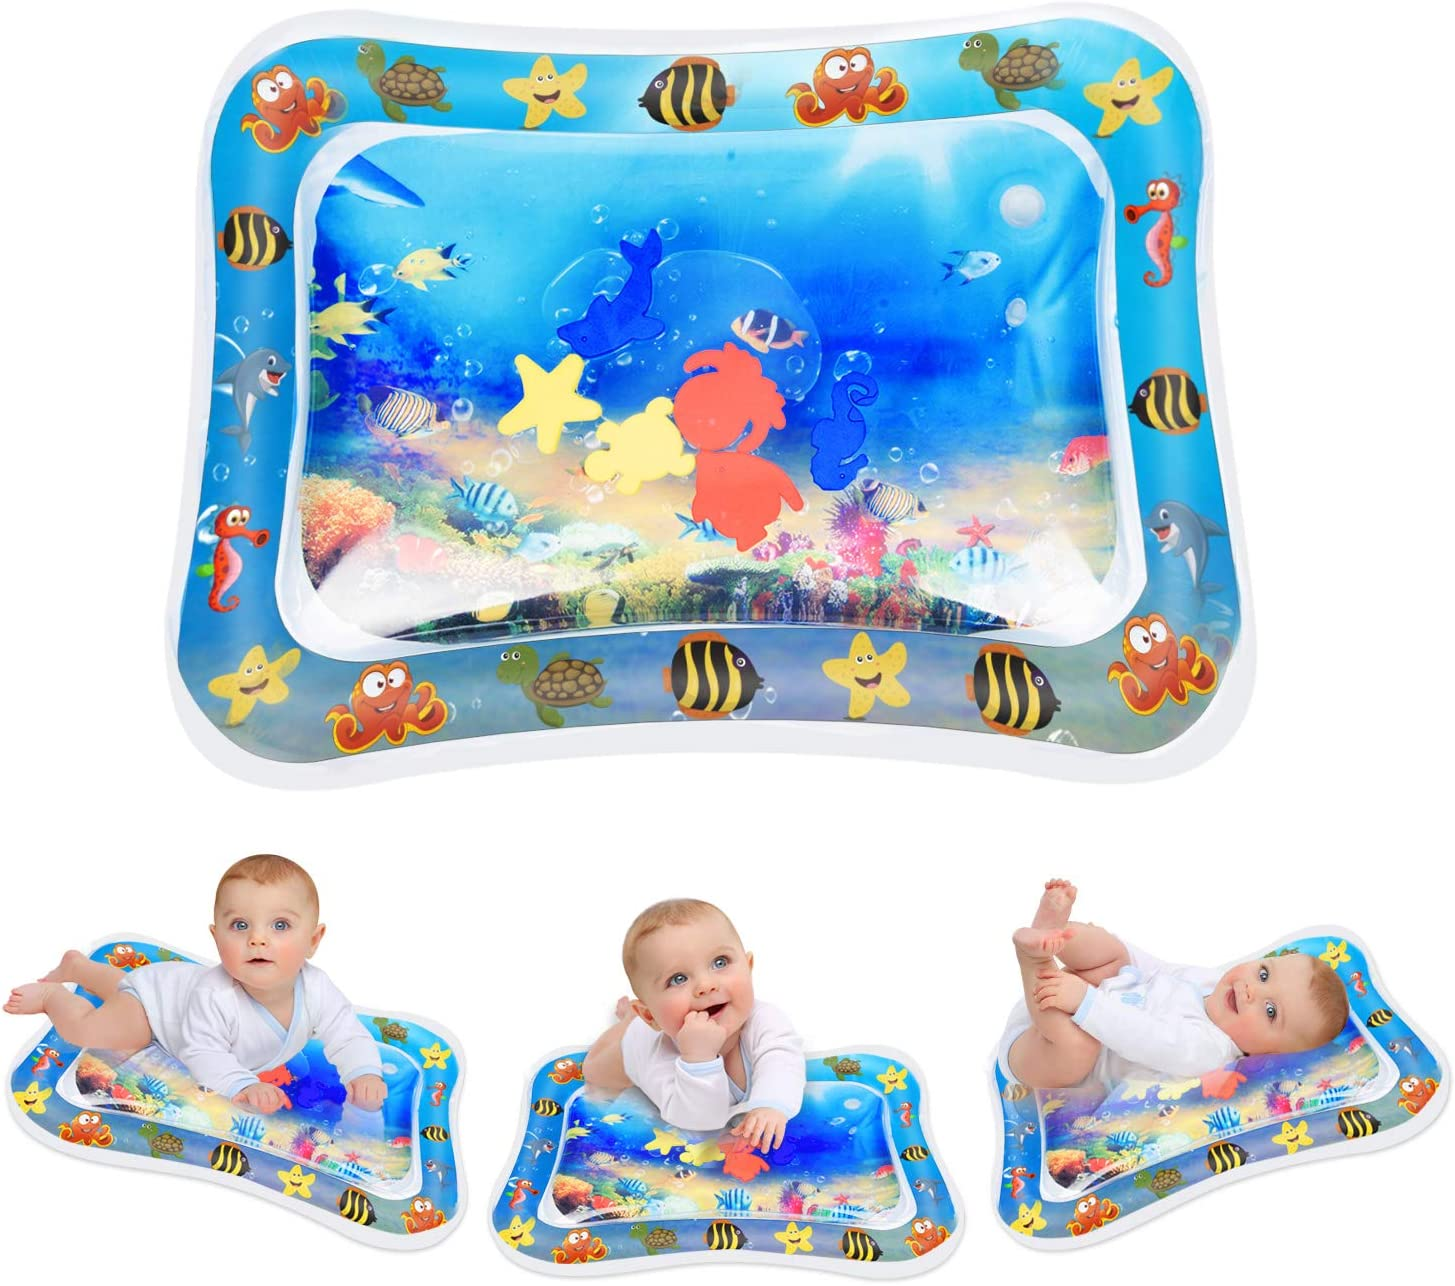 NEW Baby Child Toddler Sit And See Safari Floor Mirror Play Mat